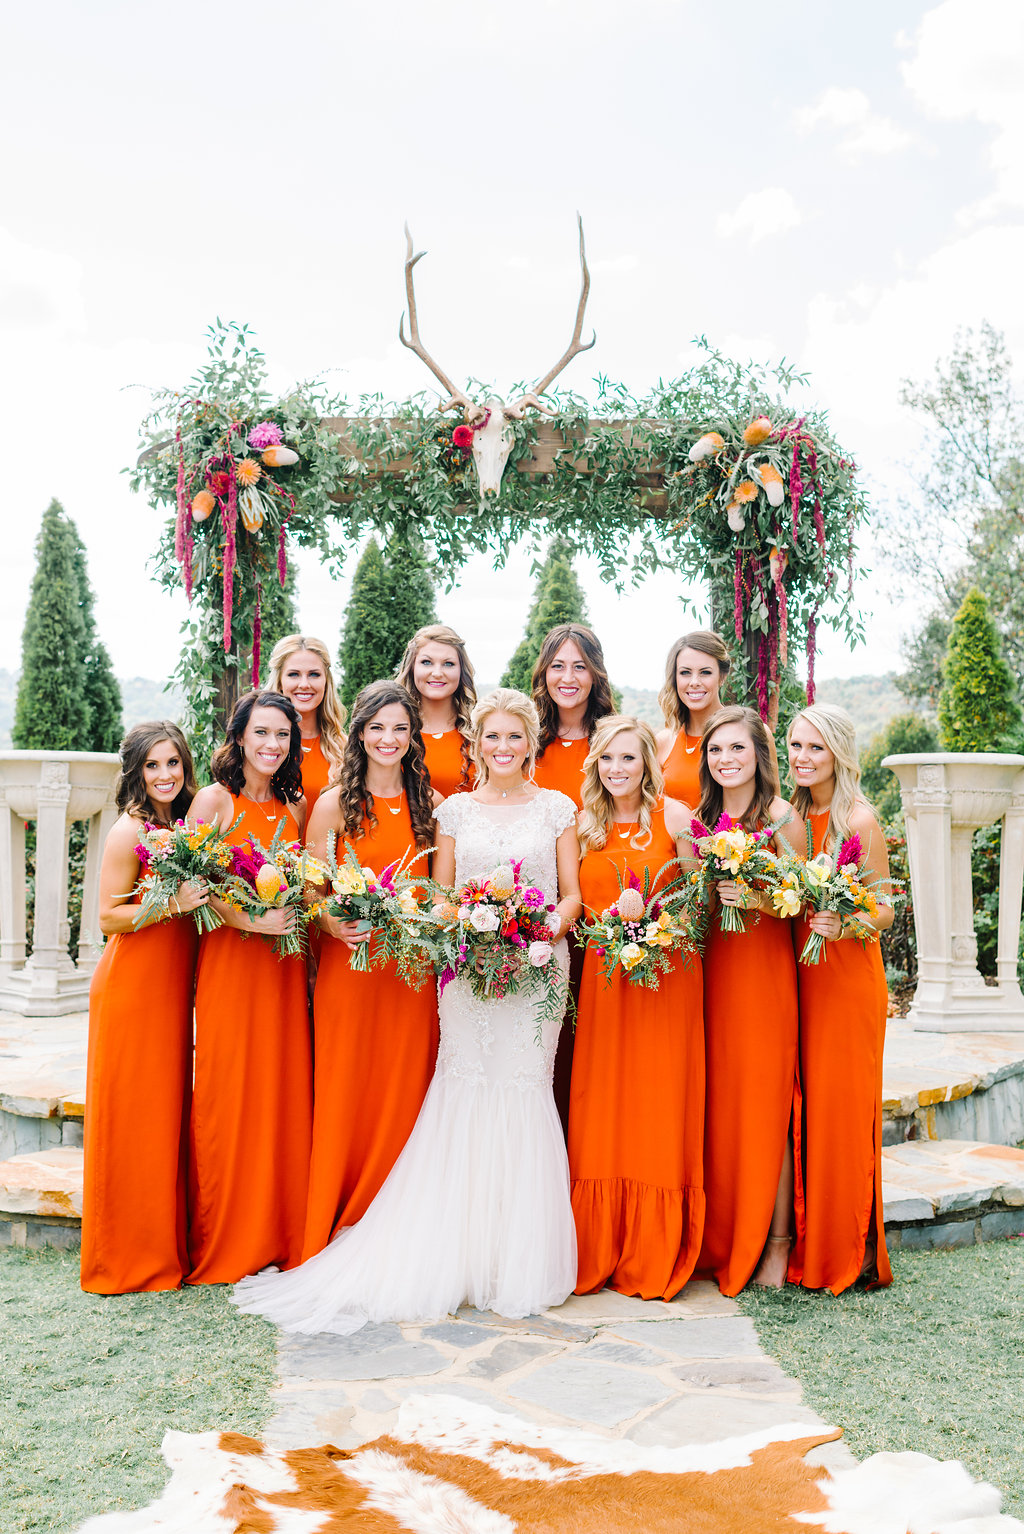 bridesmaids in orange - photo by Cathrine Taylor Photography http://ruffledblog.com/colorful-alabama-wedding-with-desert-accents